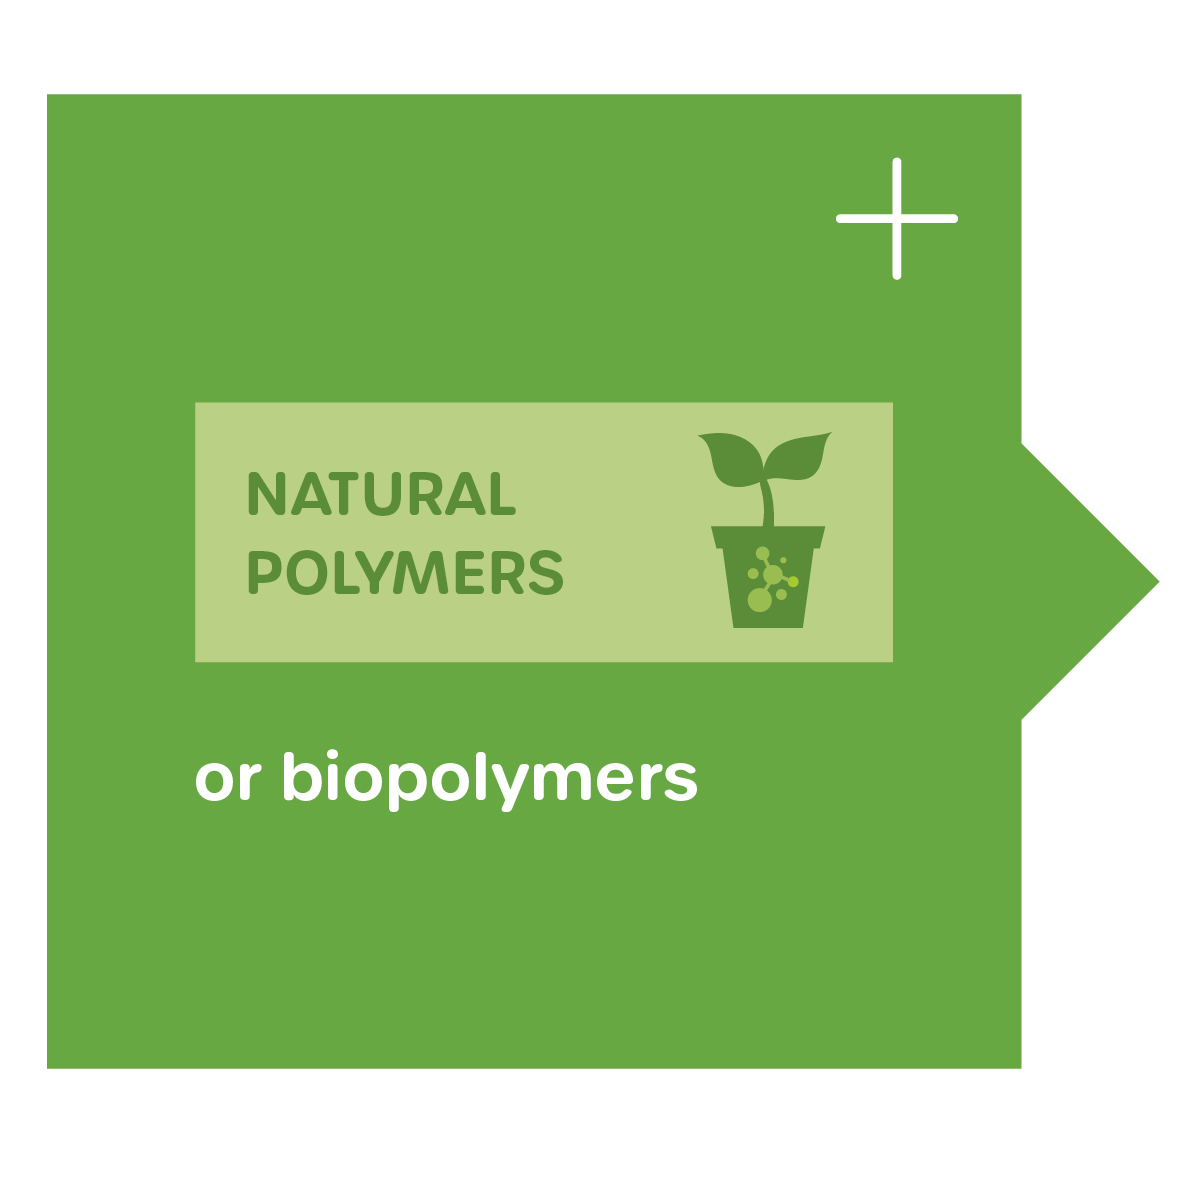 Biopolymers - natural polymers